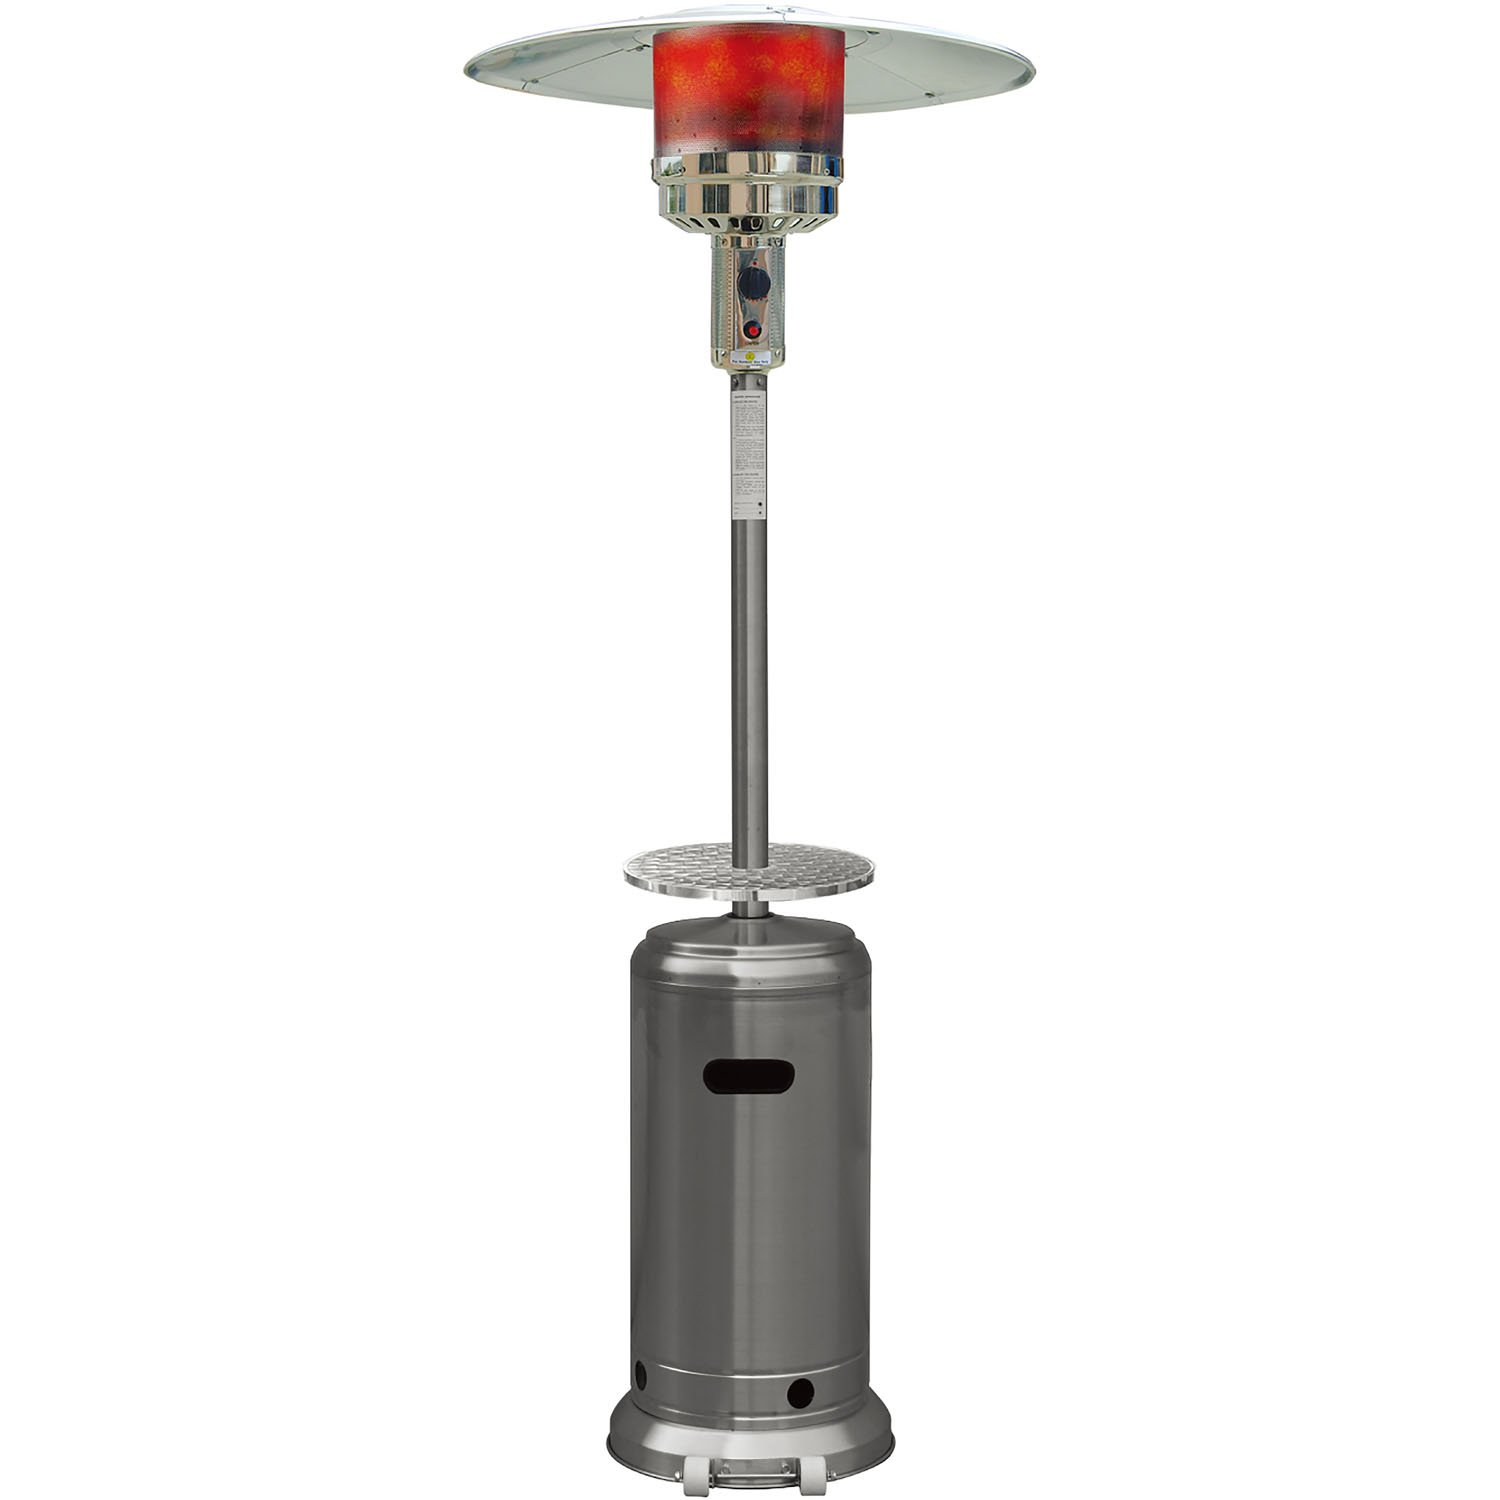 Hanover 41000 BTU Steel Umbrella Propane Patio Heater, 7', Stainless Steel Finish